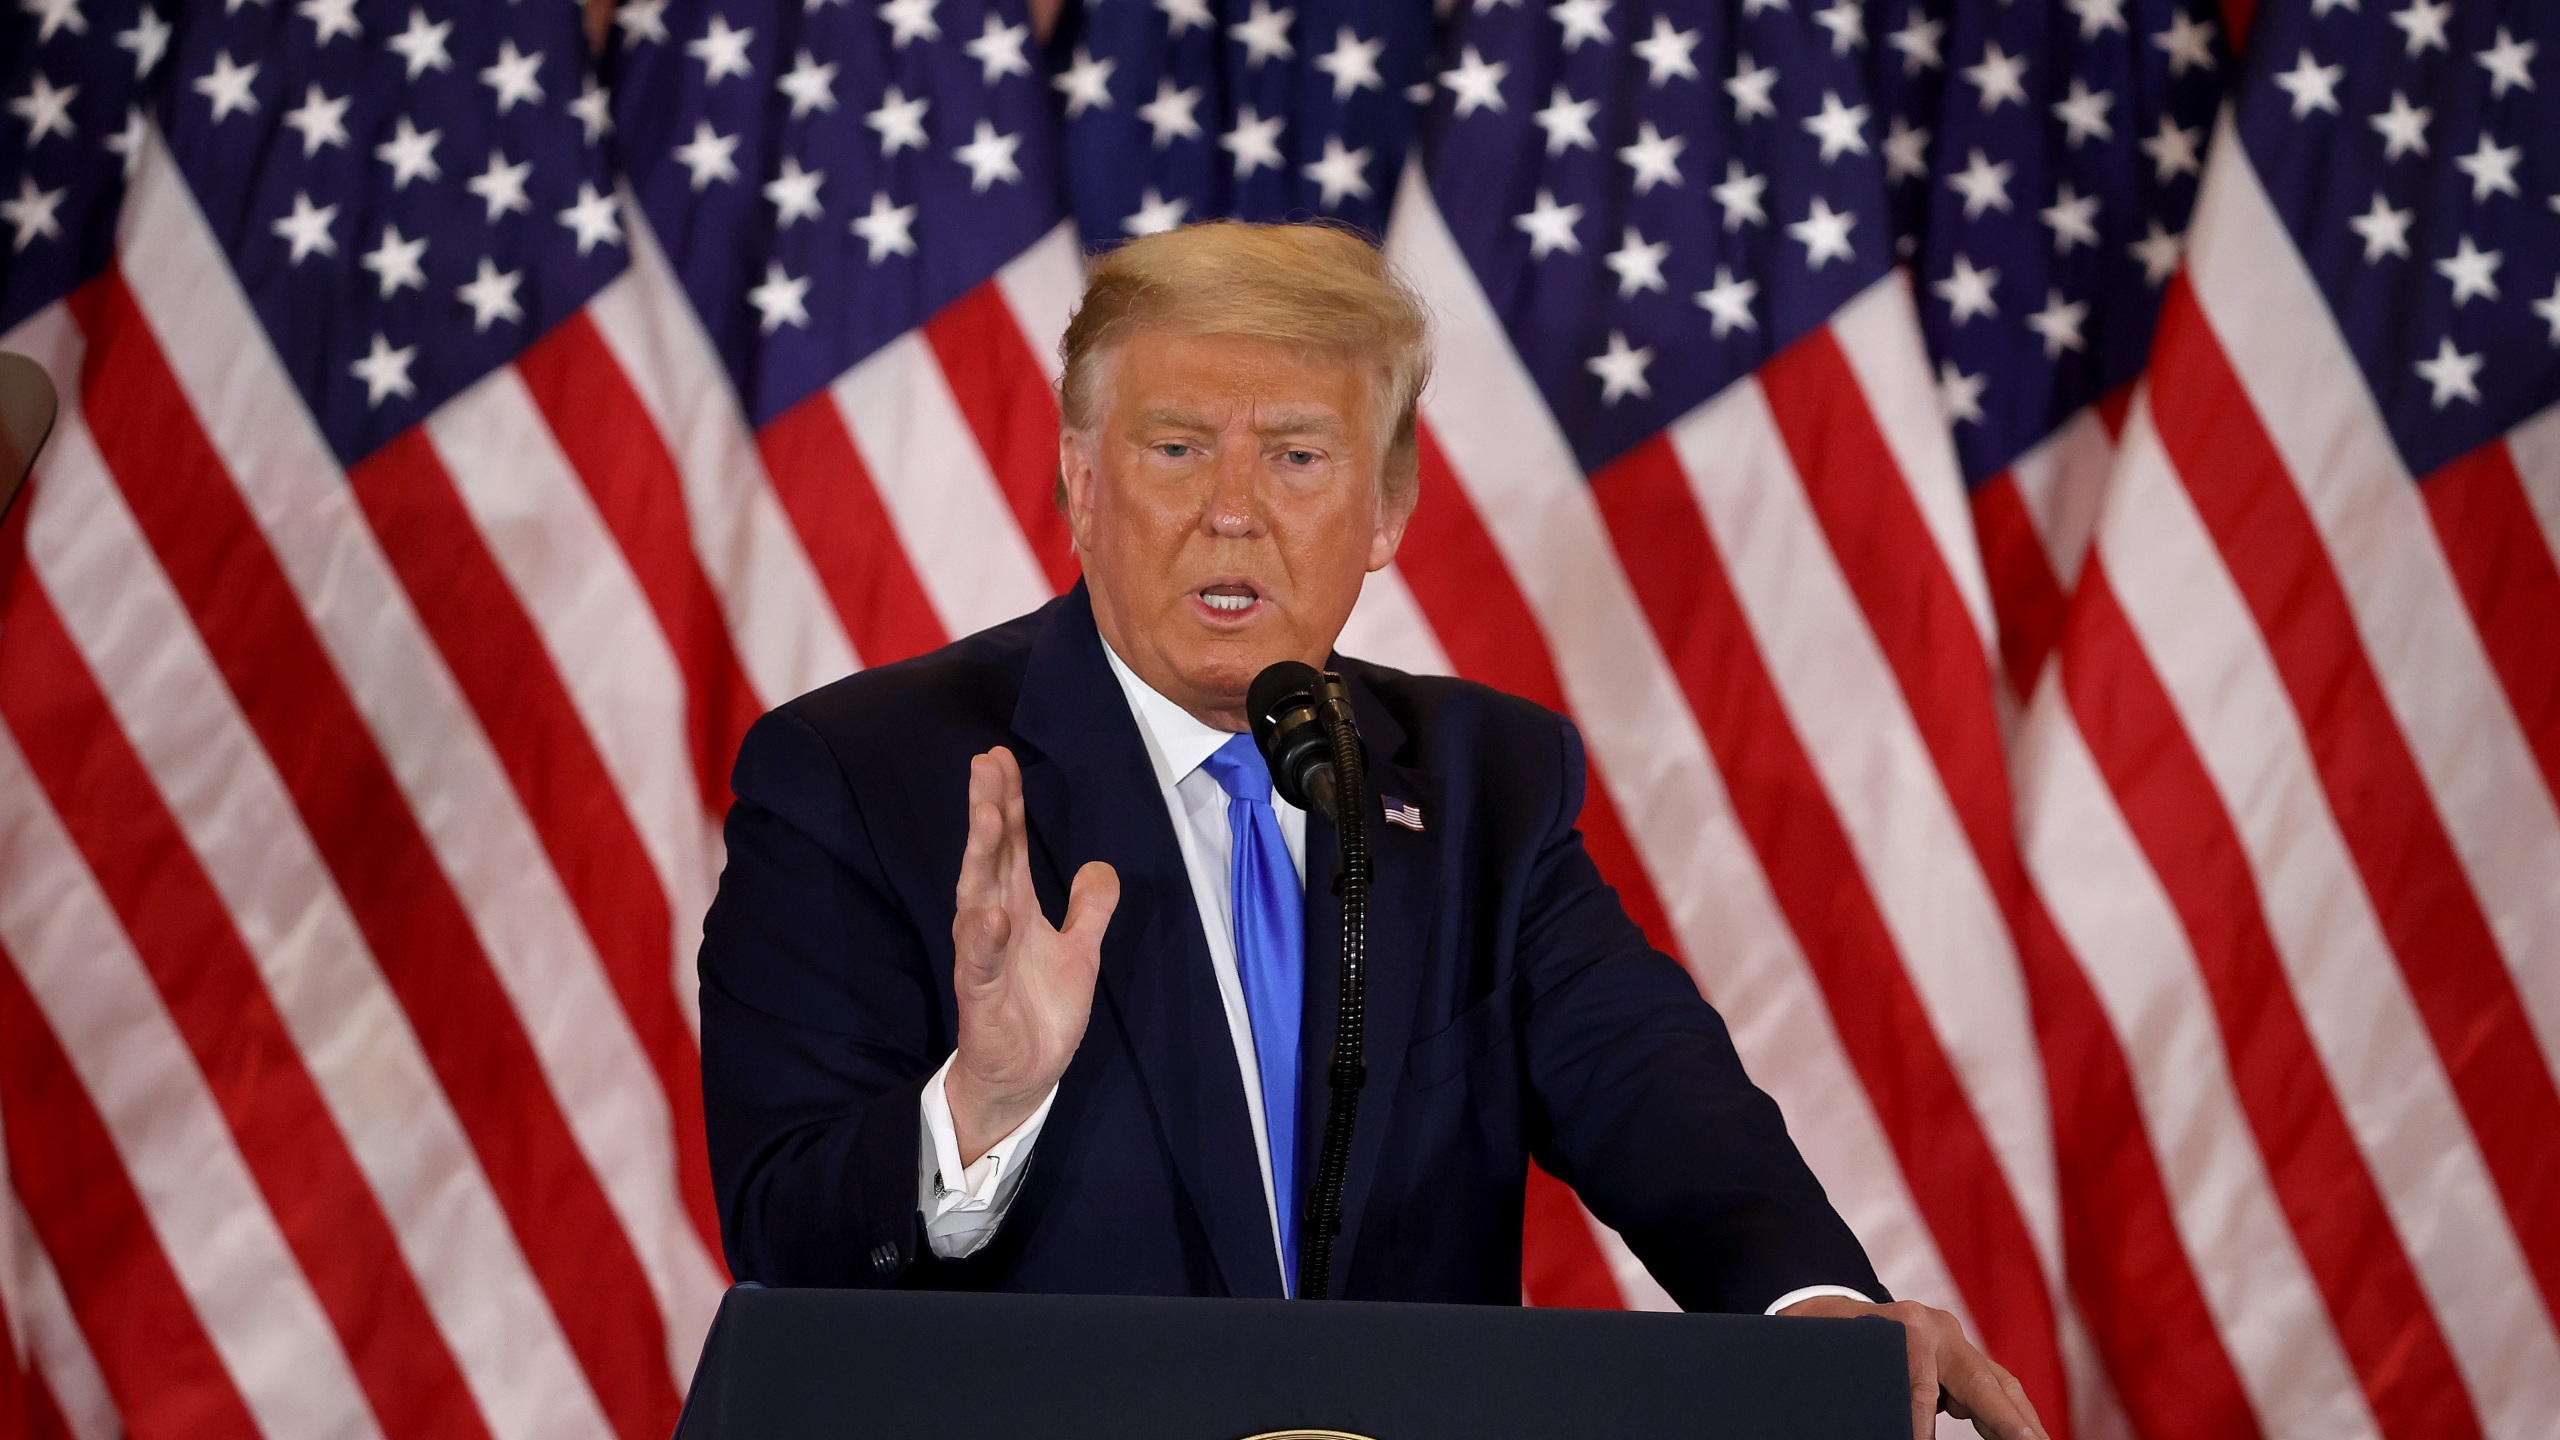 President Donald Trump speaks on election night in the East Room of the White House. Trump spoke shortly after 2am with the presidential race against Democratic presidential nominee Joe Biden still too close to call. (Photo by Chip Somodevilla/Getty Images)